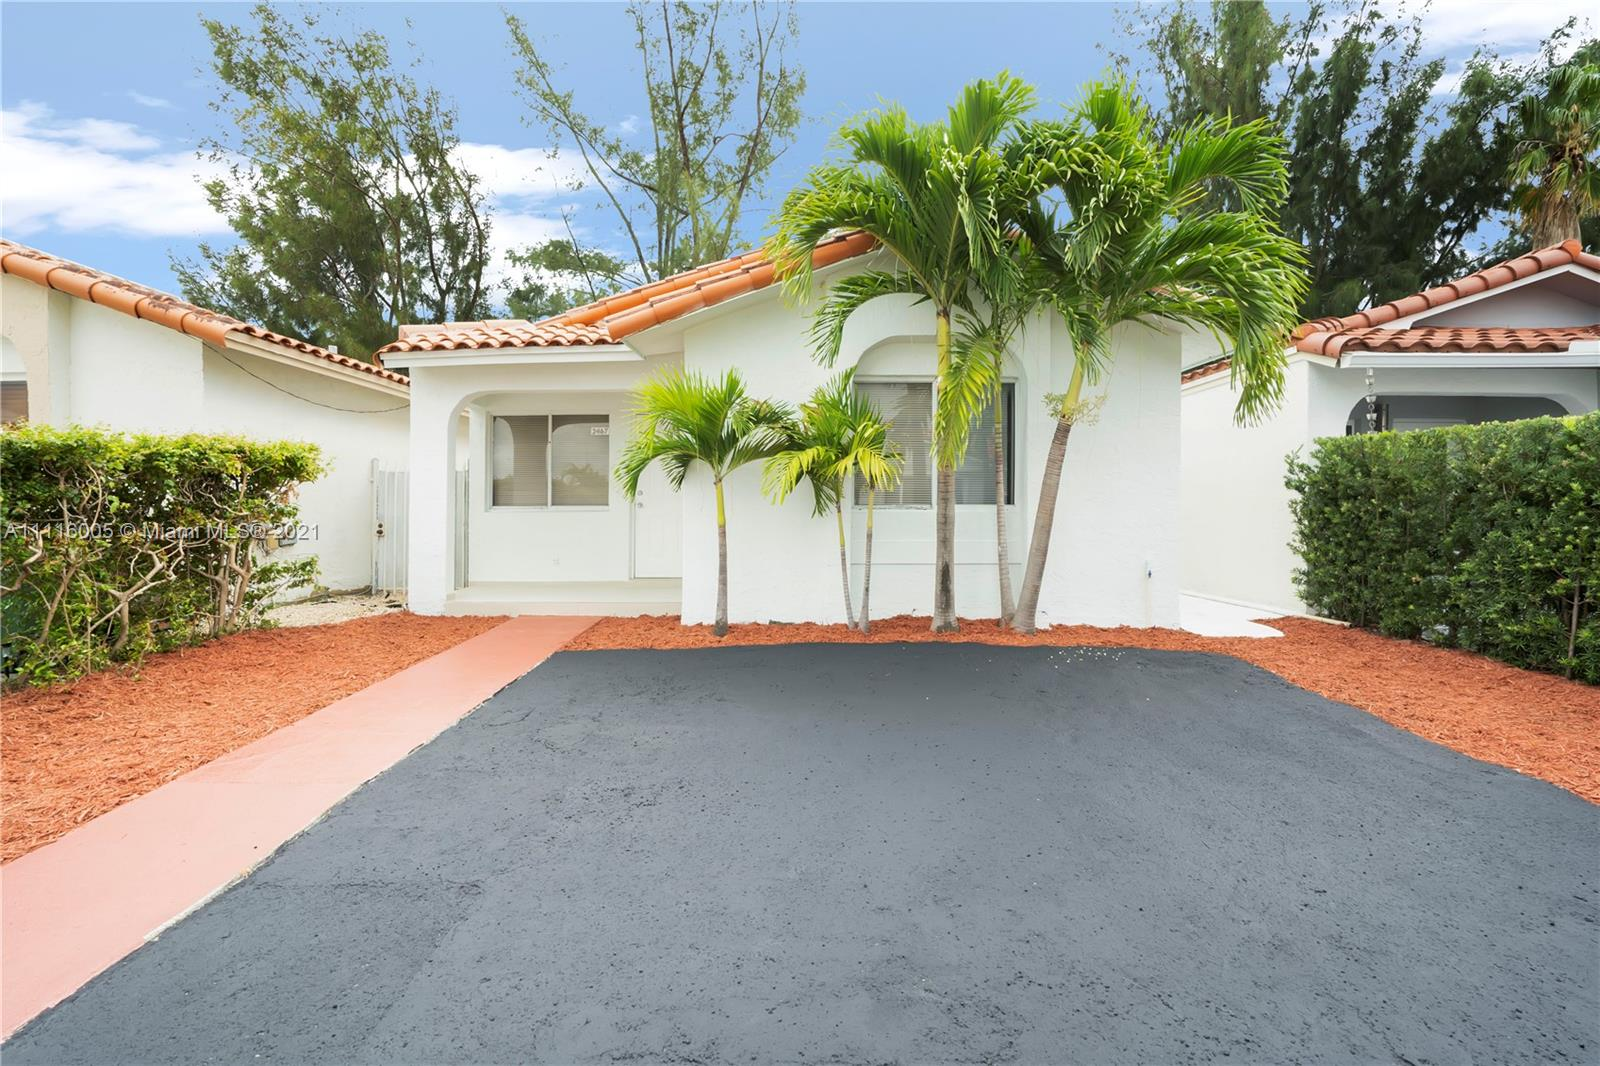 Single Family Home,For Sale,2467 W 65th St, Hialeah, Florida 33016,Brickell,realty,broker,condos near me